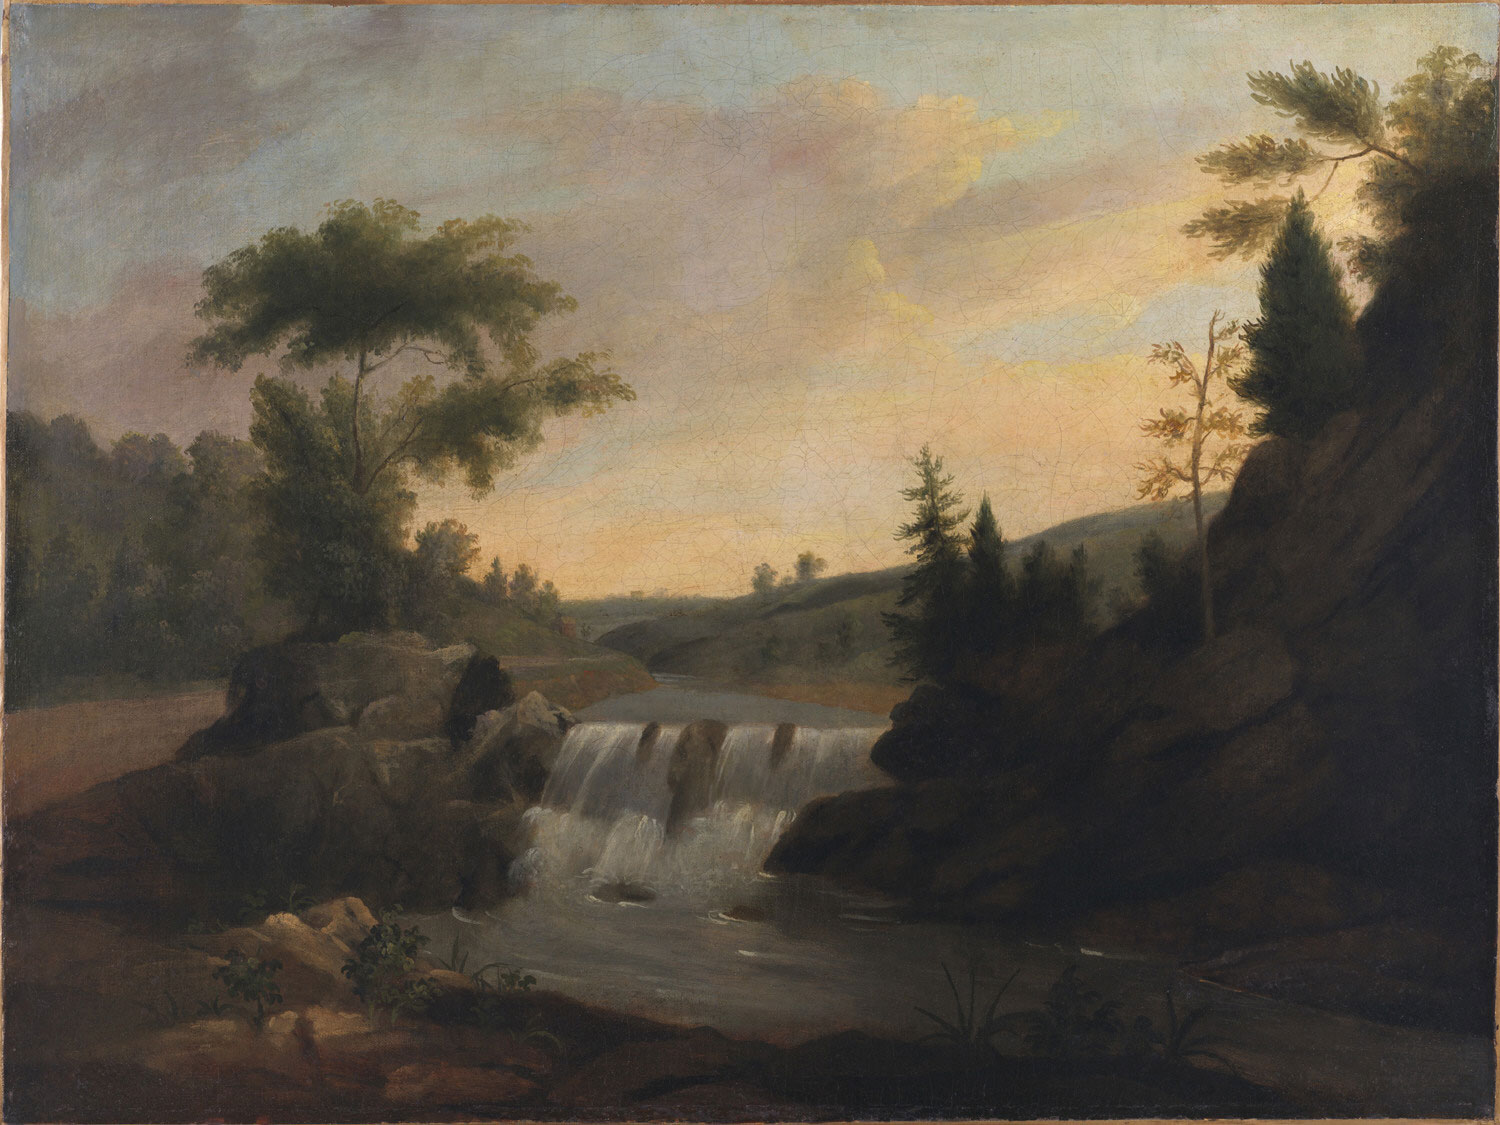 View on the Wissahickon with Waterfall